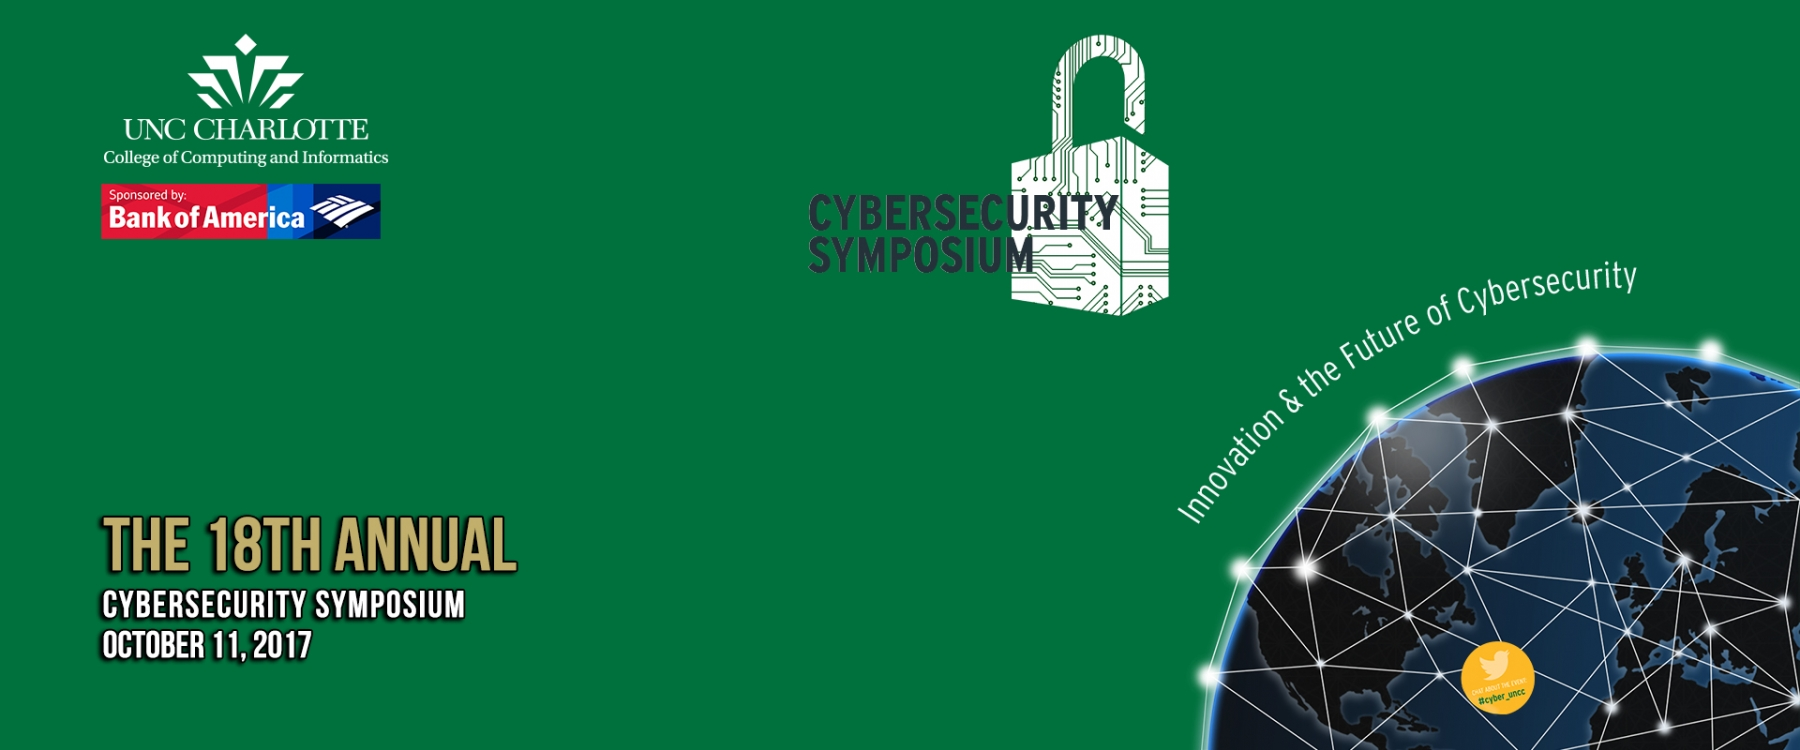 Cyber Security Symposium Image Rotator